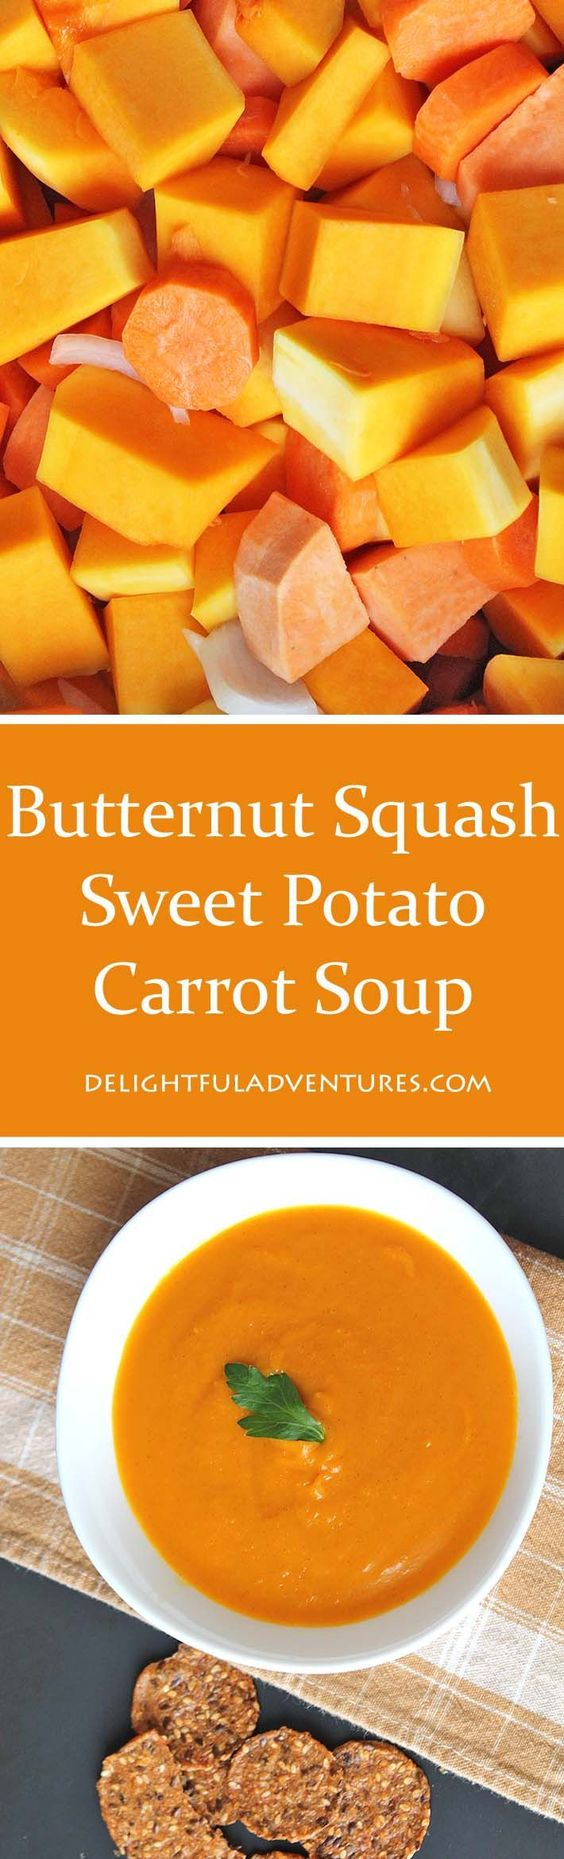 squash squashes sweet potato carrot soup easy recipes potatoes carrots ...